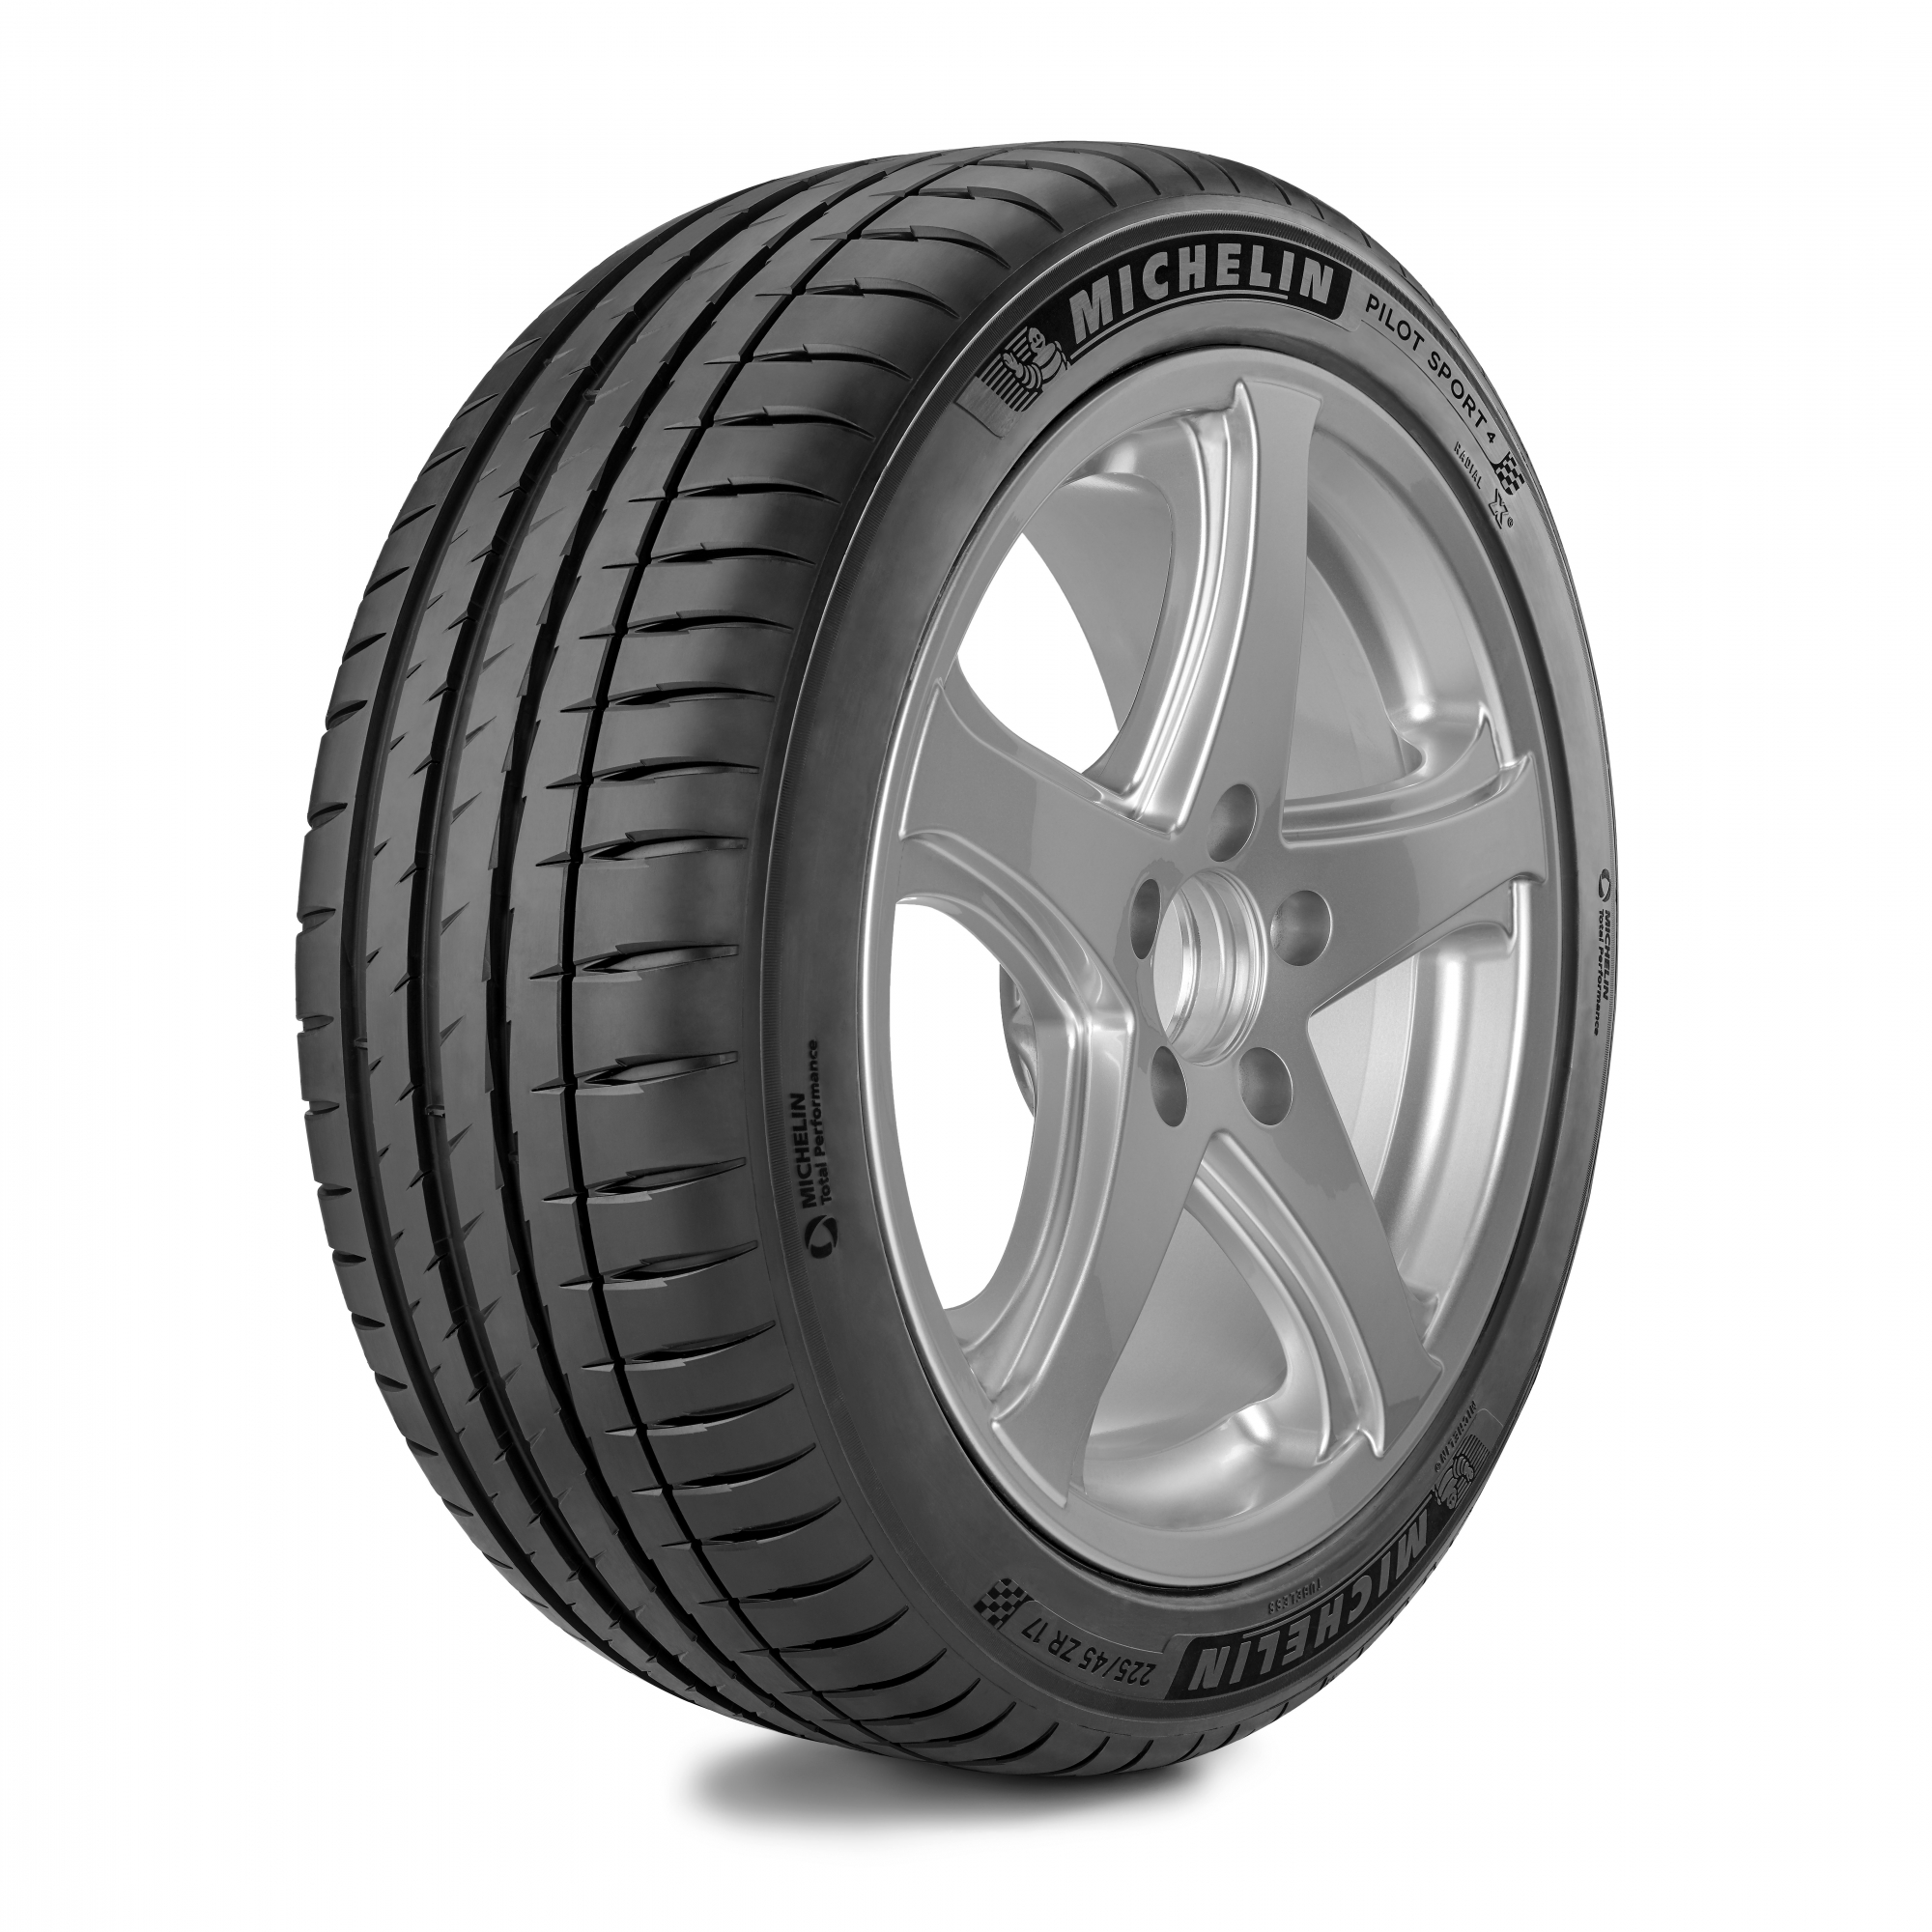 the threadway tire company The treadway tire company in lima, ohio is faced with rather difficult times these difficulties however are not due to lack of work with a down recession, or concerned with too much demand and not enough capacity to fill it.